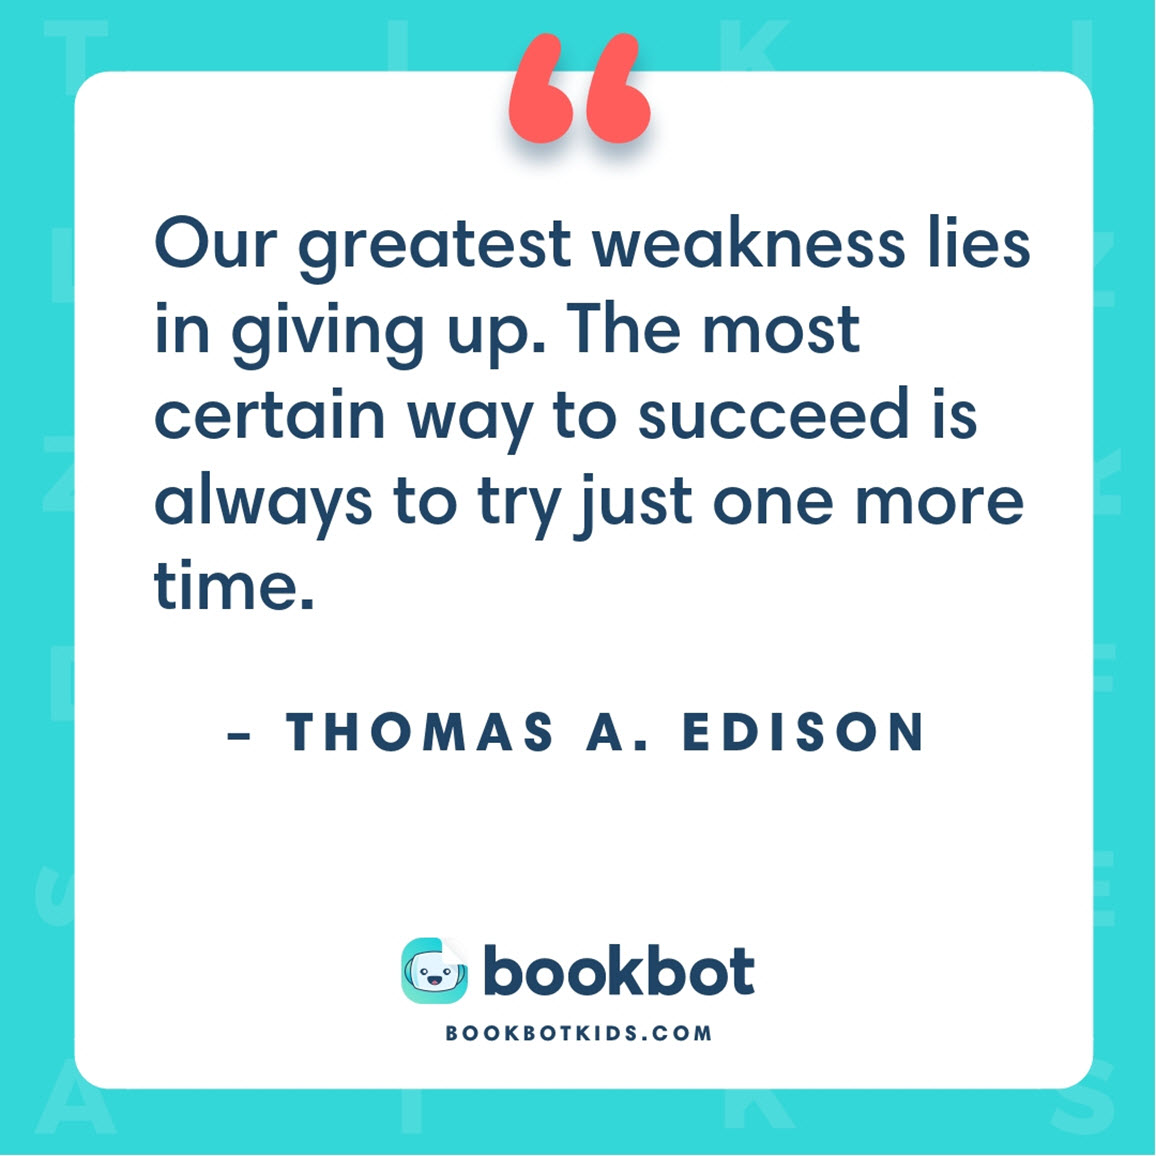 Our greatest weakness lies in giving up. The most certain way to succeed is always to try just one more time. – Thomas A. Edison